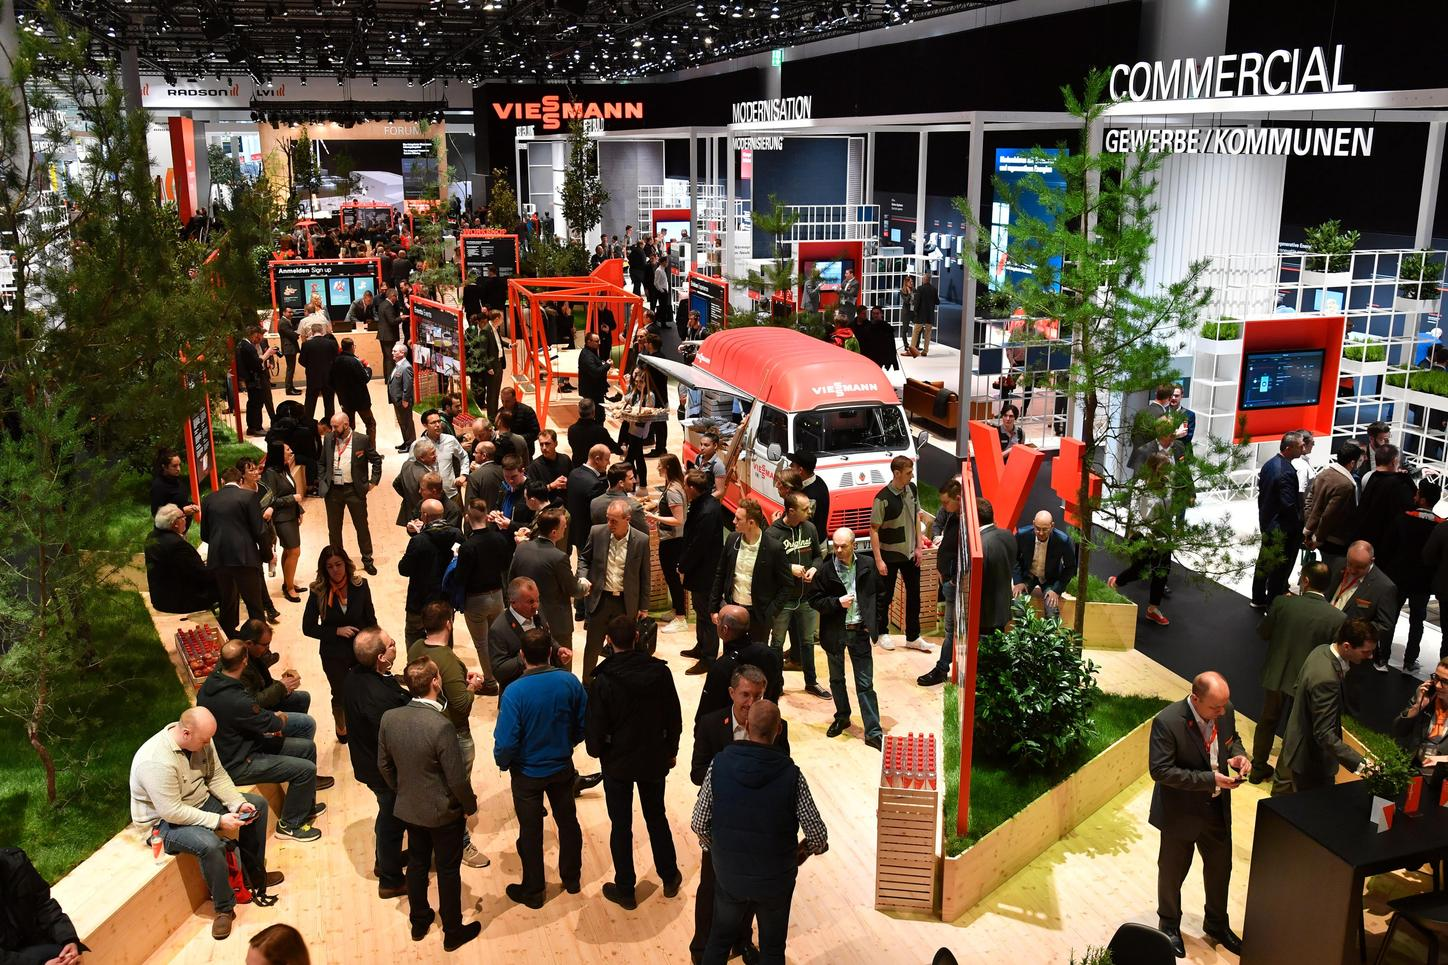 The image shows the Viessmann stand at the ISH 2019.